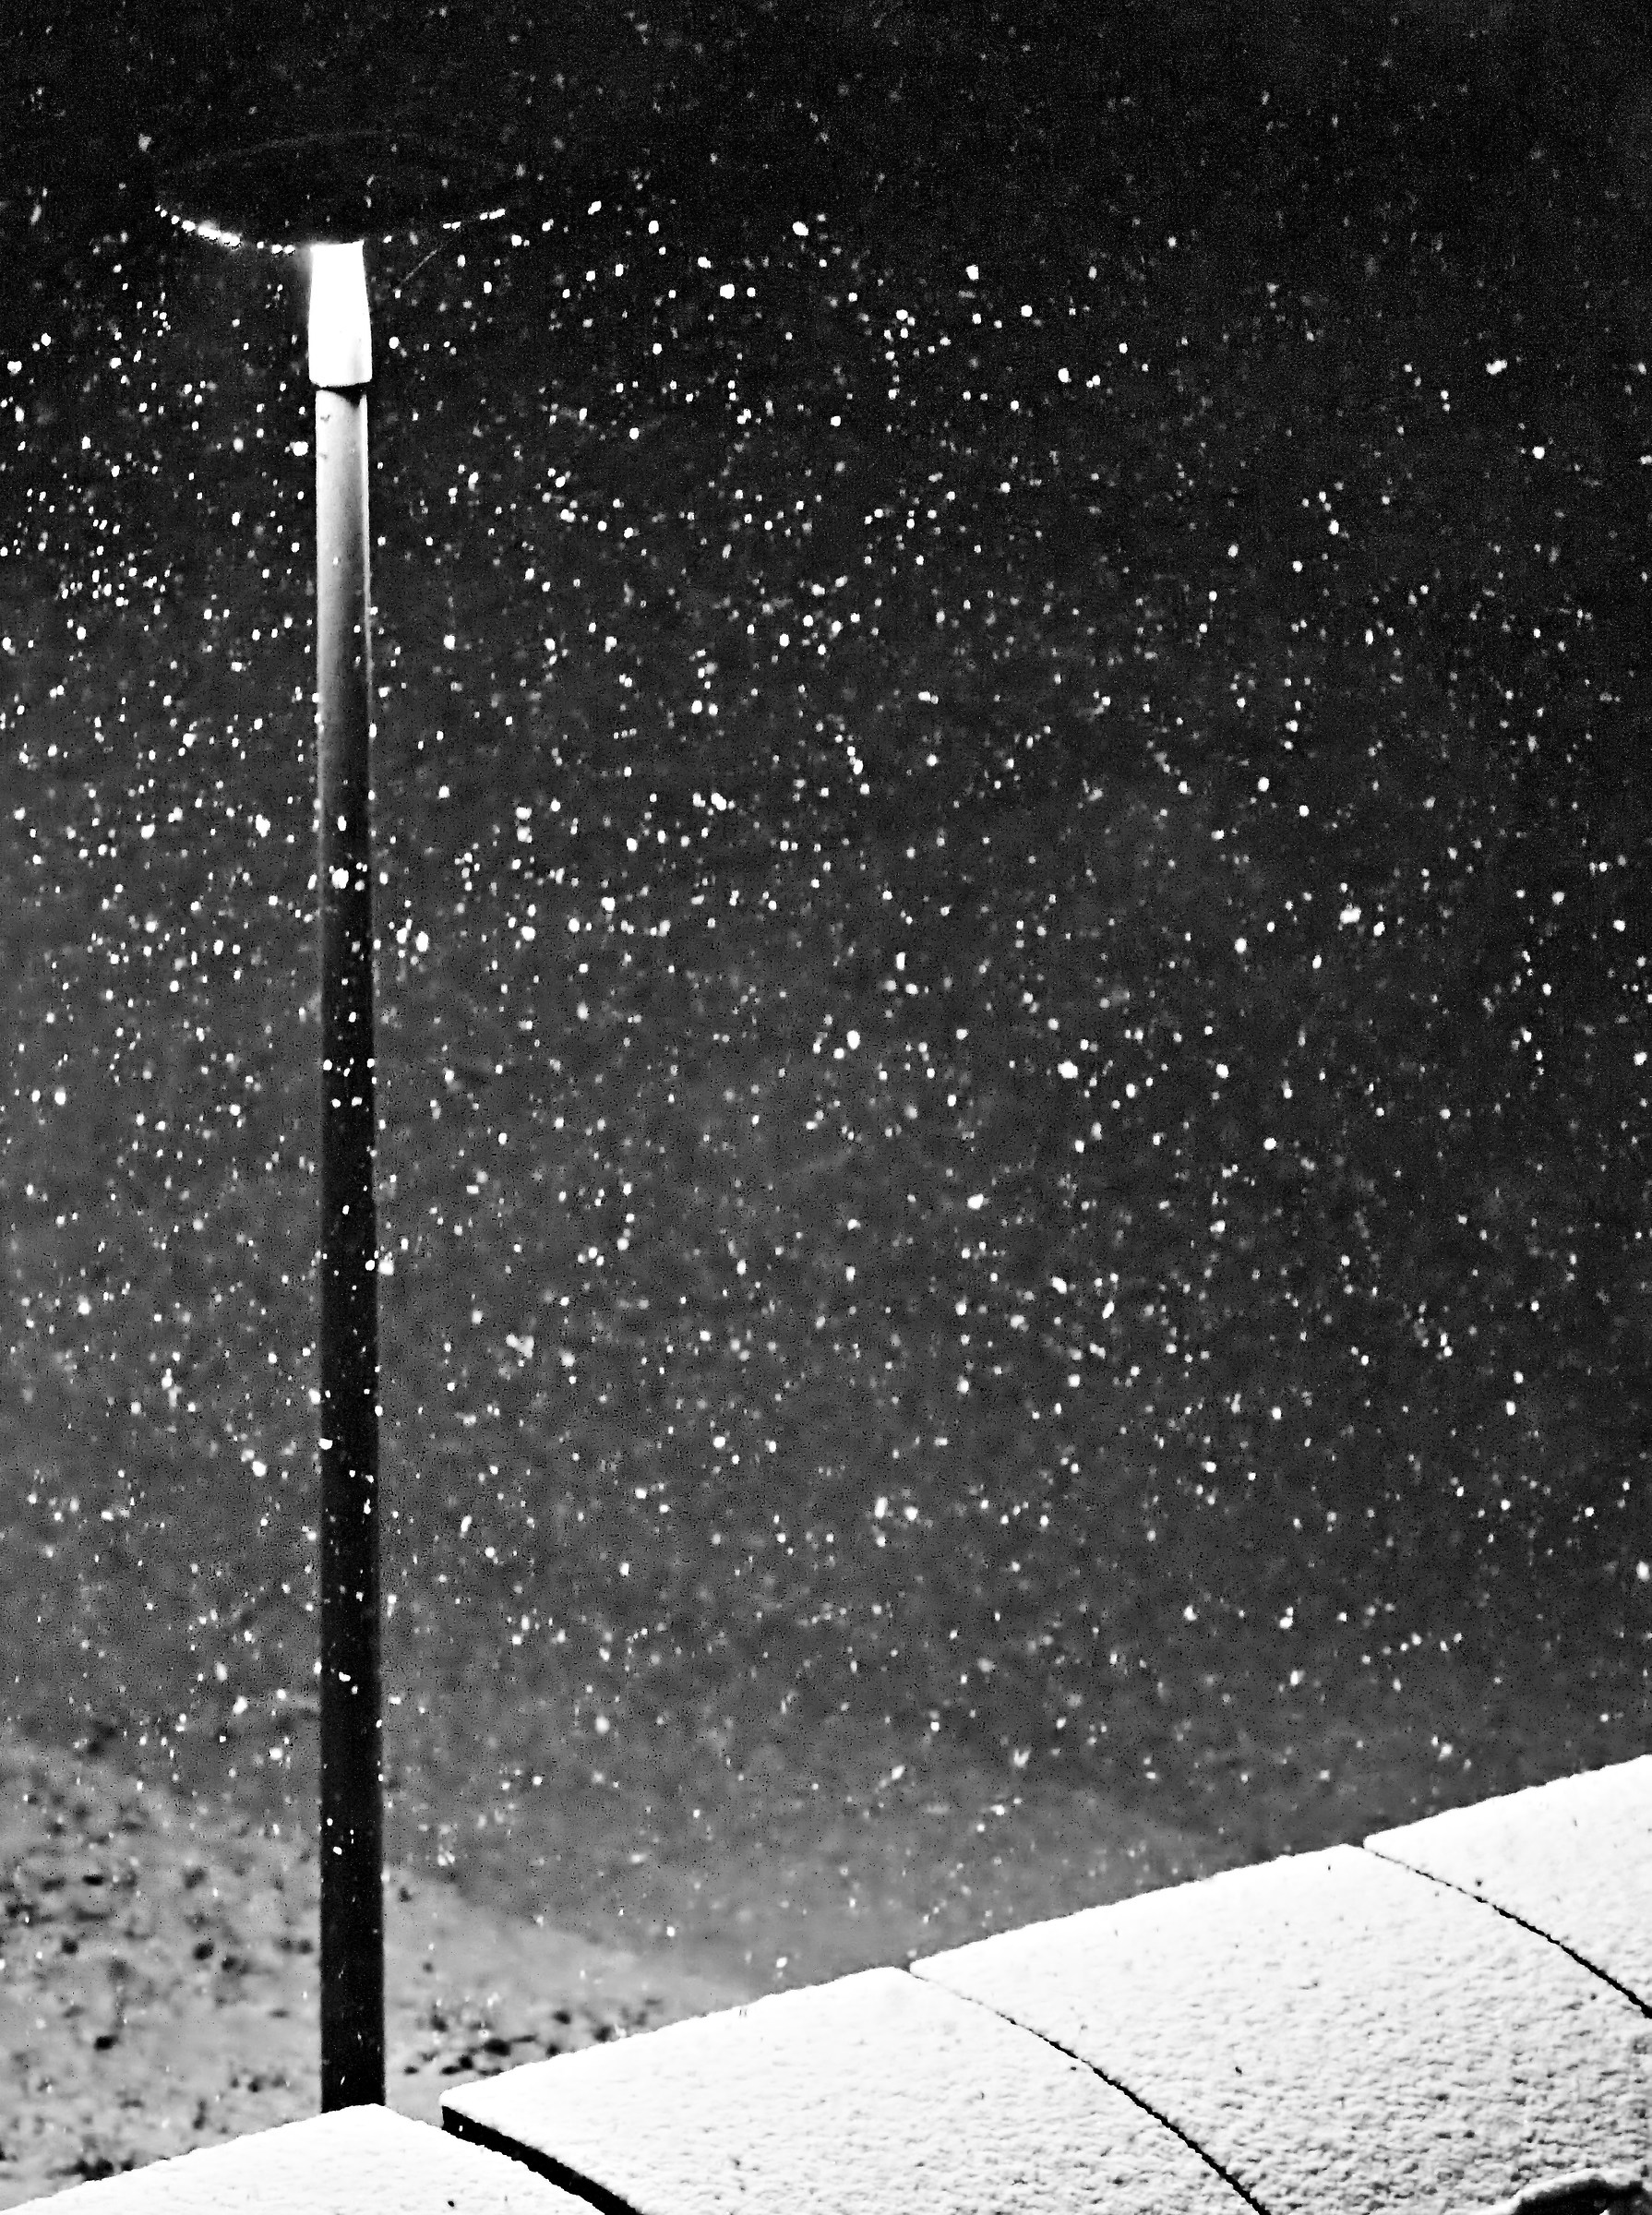 Snowing in the town...